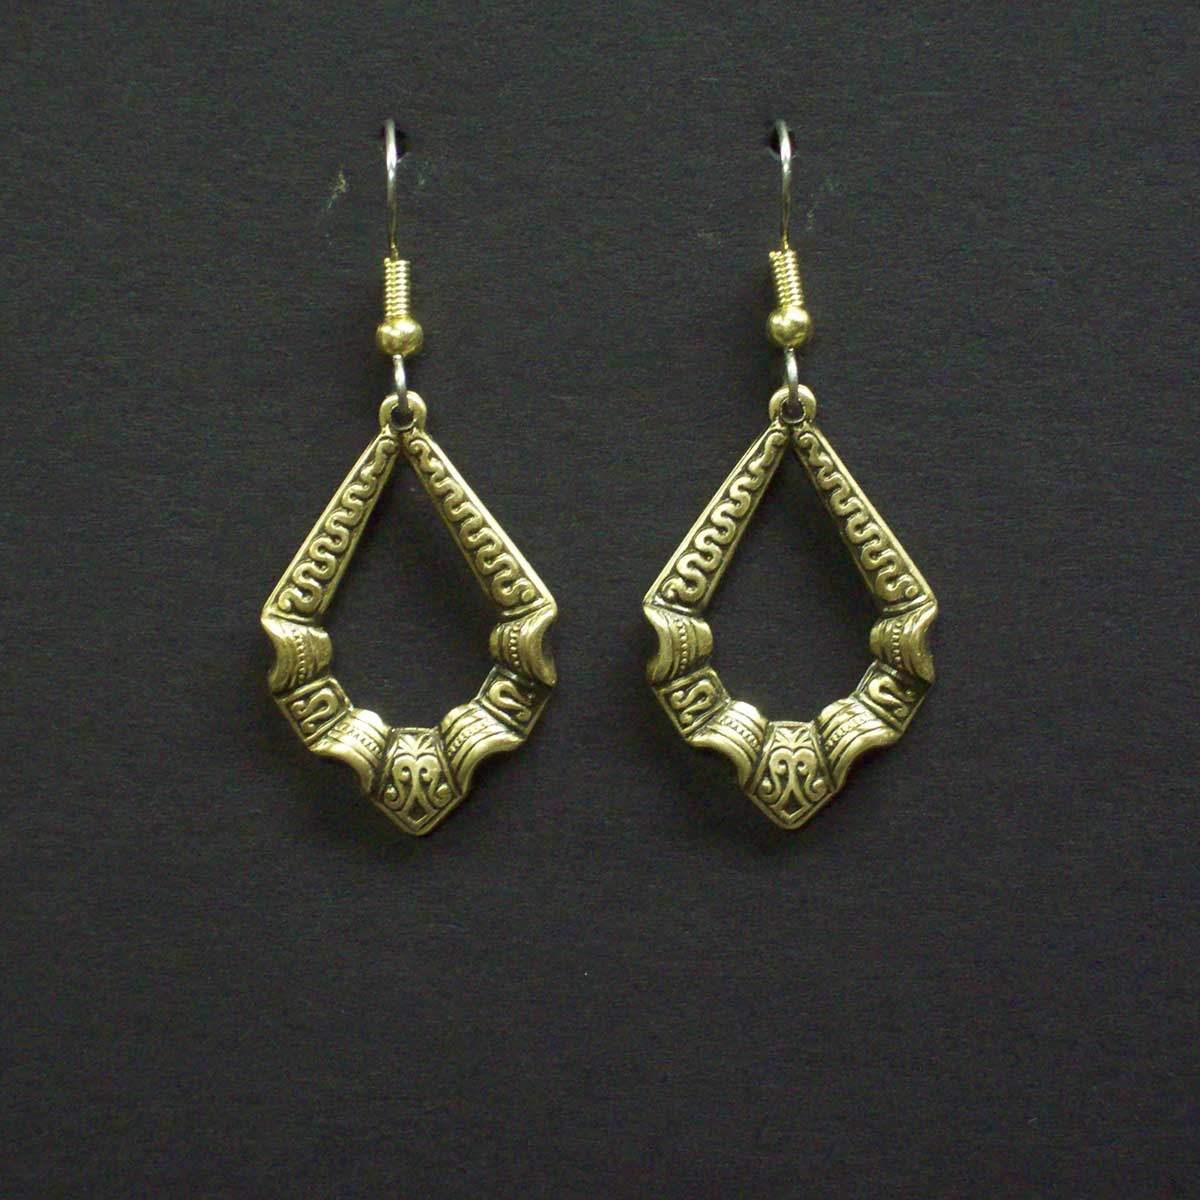 Embossed Victorian Loop Earrings